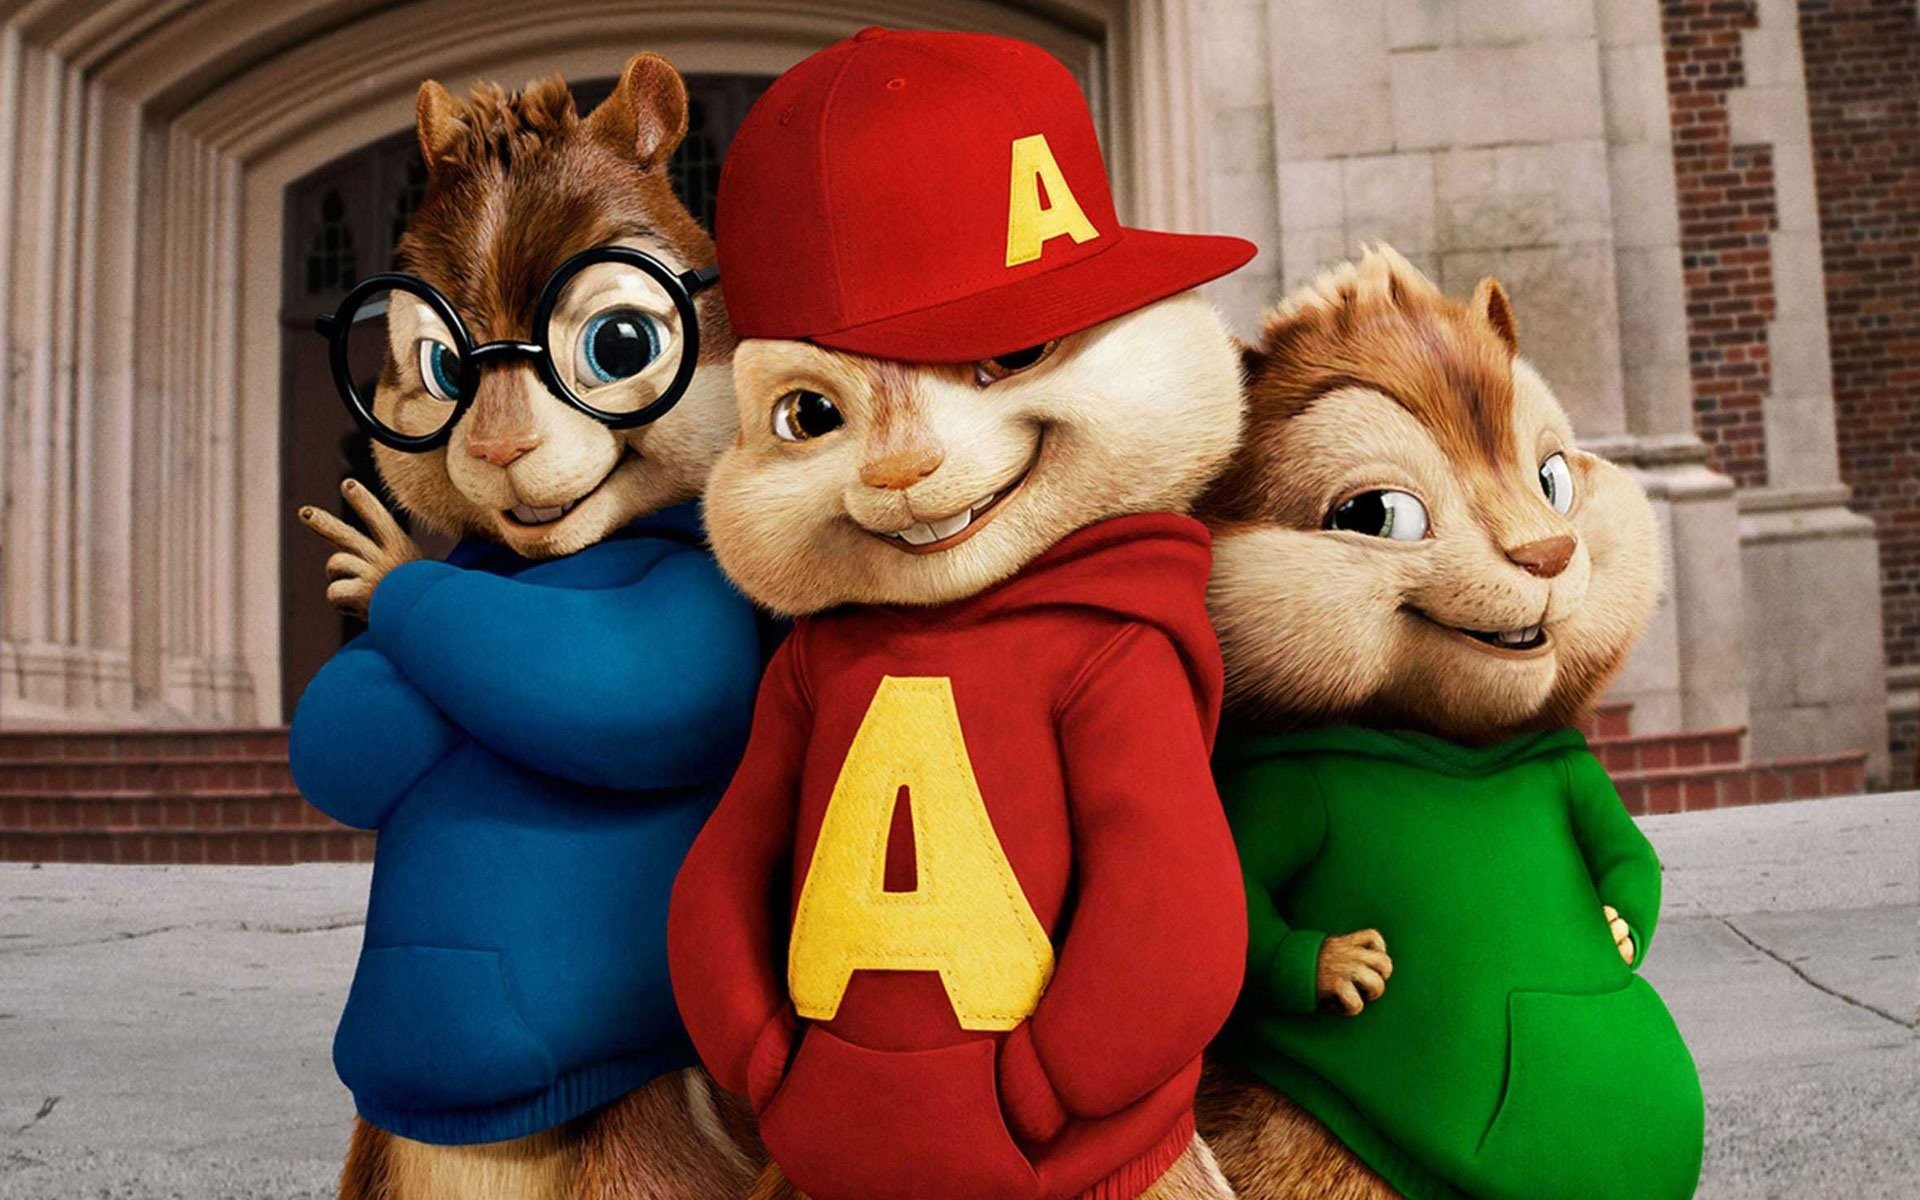 49 Alvin And The Chipmunks Wallpaper On Wallpapersafari